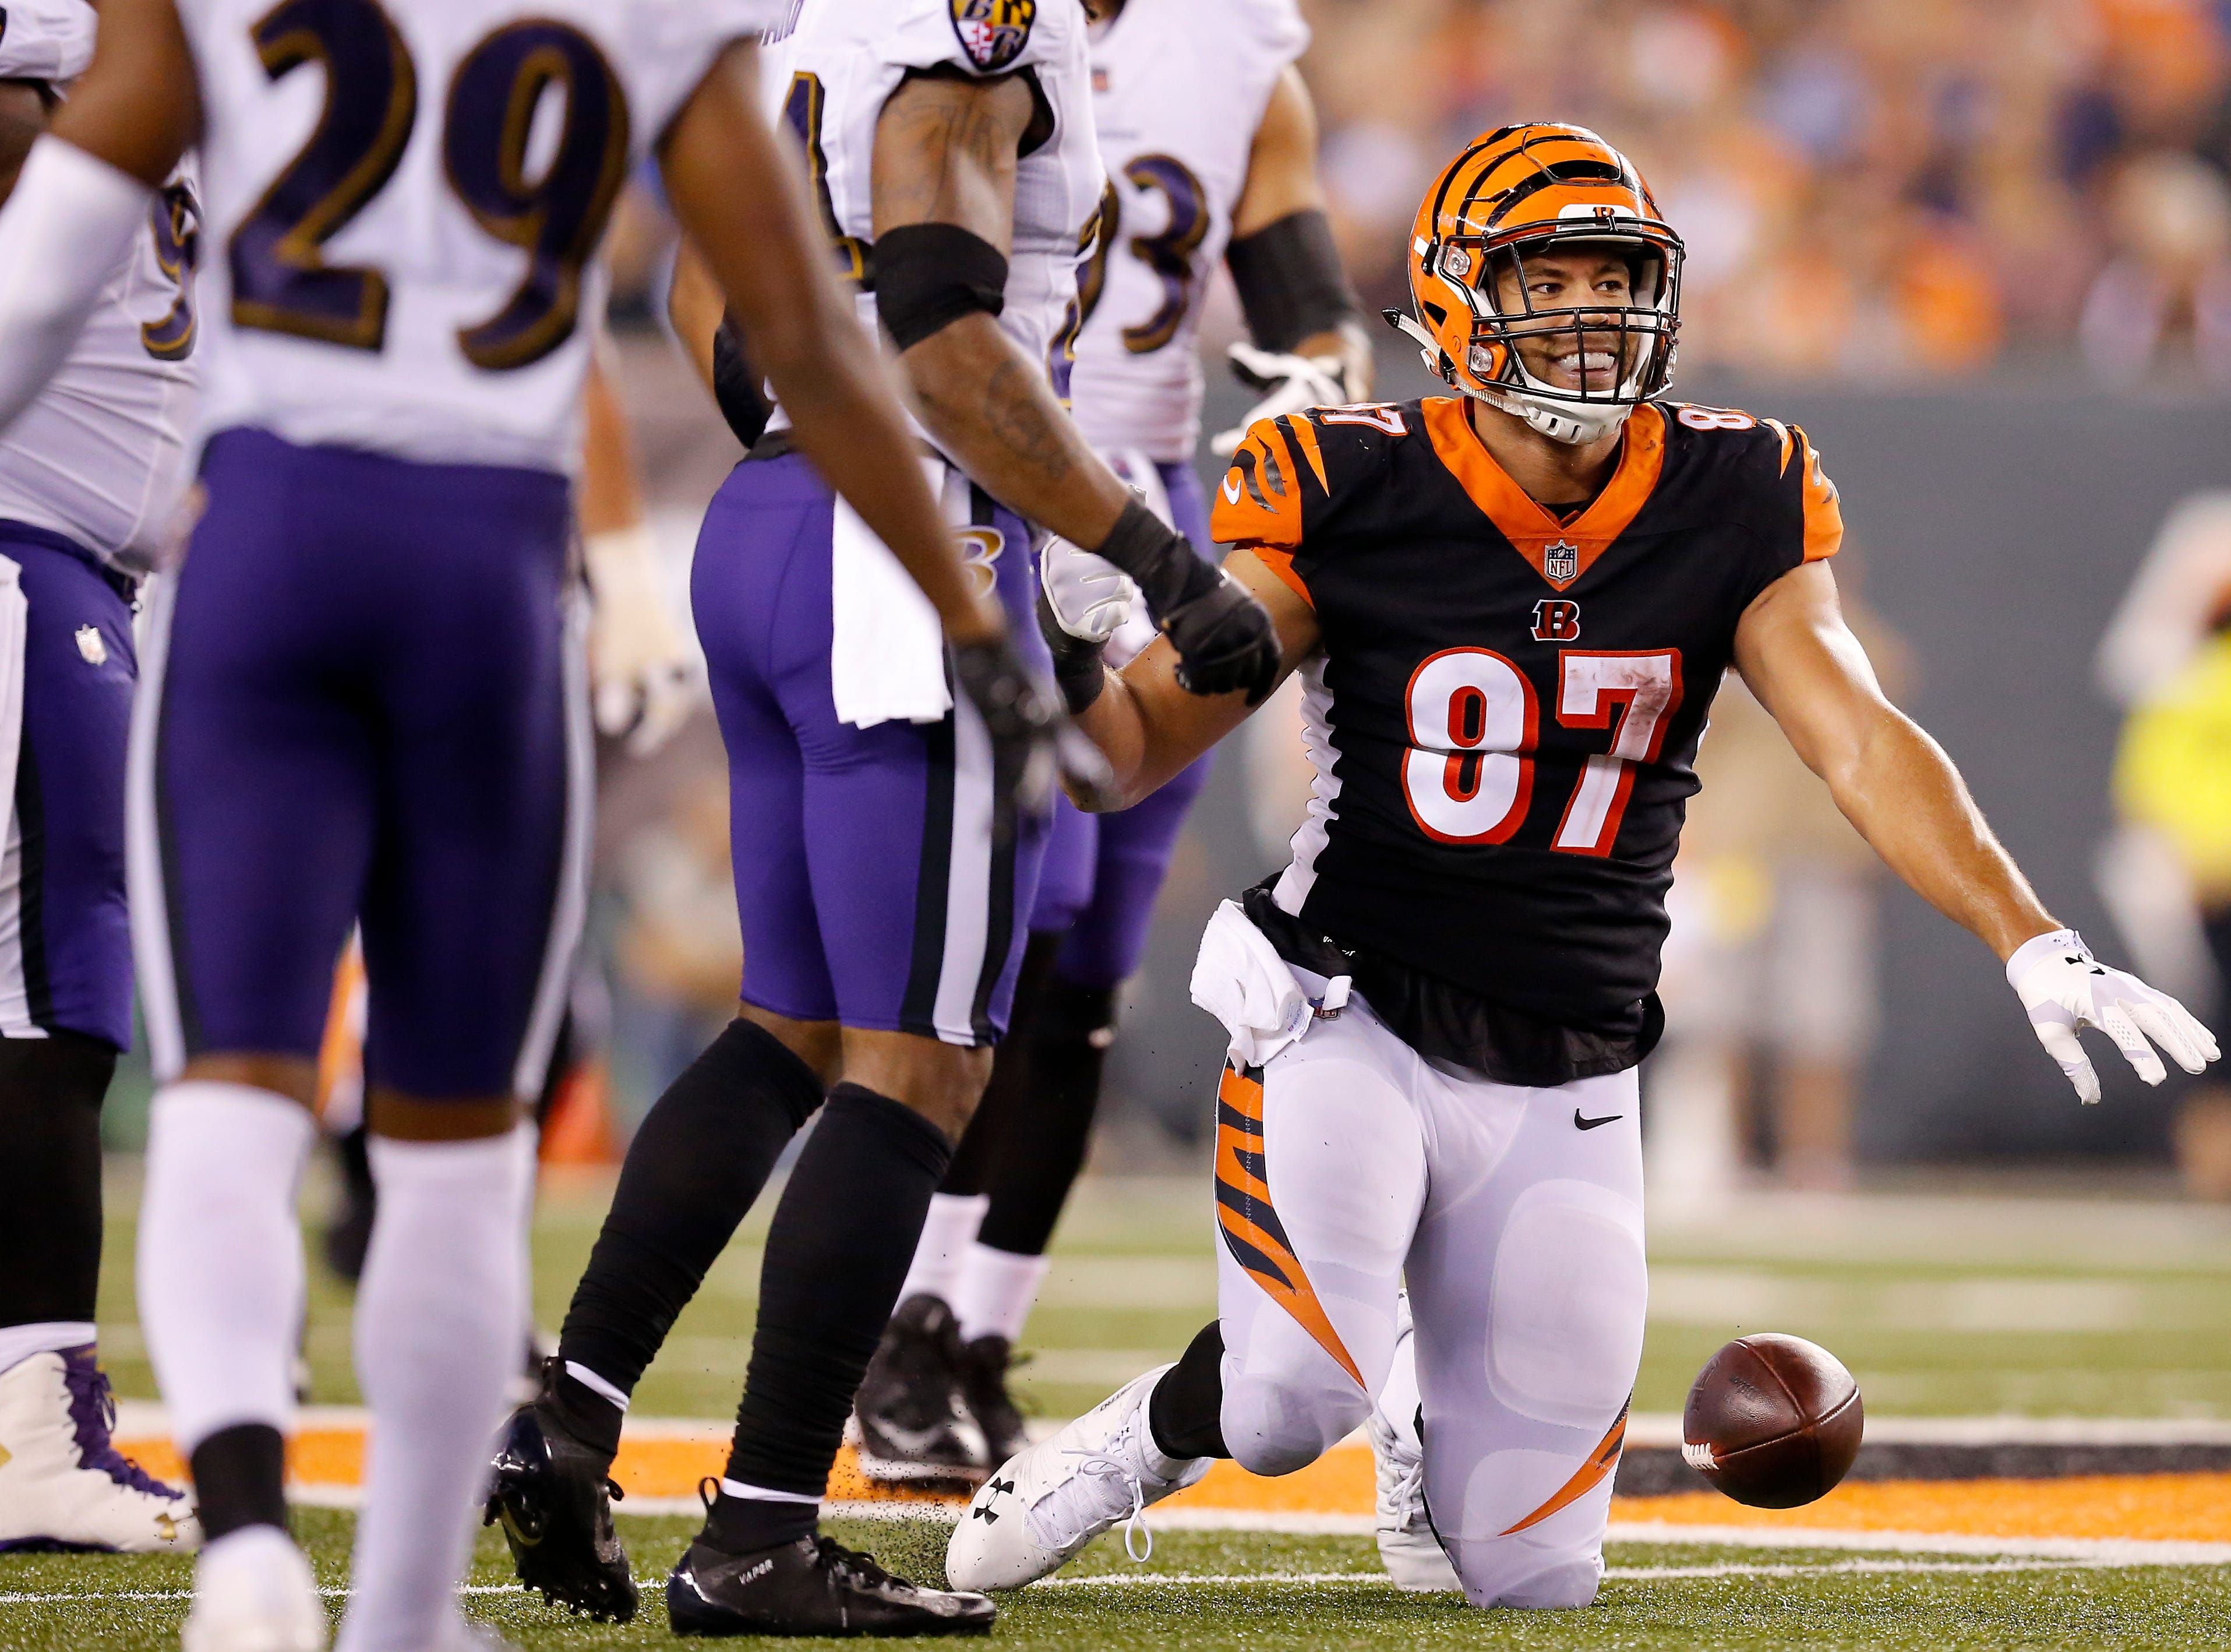 Cincinnati Bengals tight end C.J. Uzomah (87) smiles as he gets to his feet after a first-down reception in the fourth quarter of the NFL Week 2 game between the Cincinnati Bengals and the Baltimore Ravens at Paul Brown Stadium in downtown Cincinnati on Thursday, Sept. 13, 2018. The Bengals improved to 2-0 on the season with a 34-23 win over the Ravens.